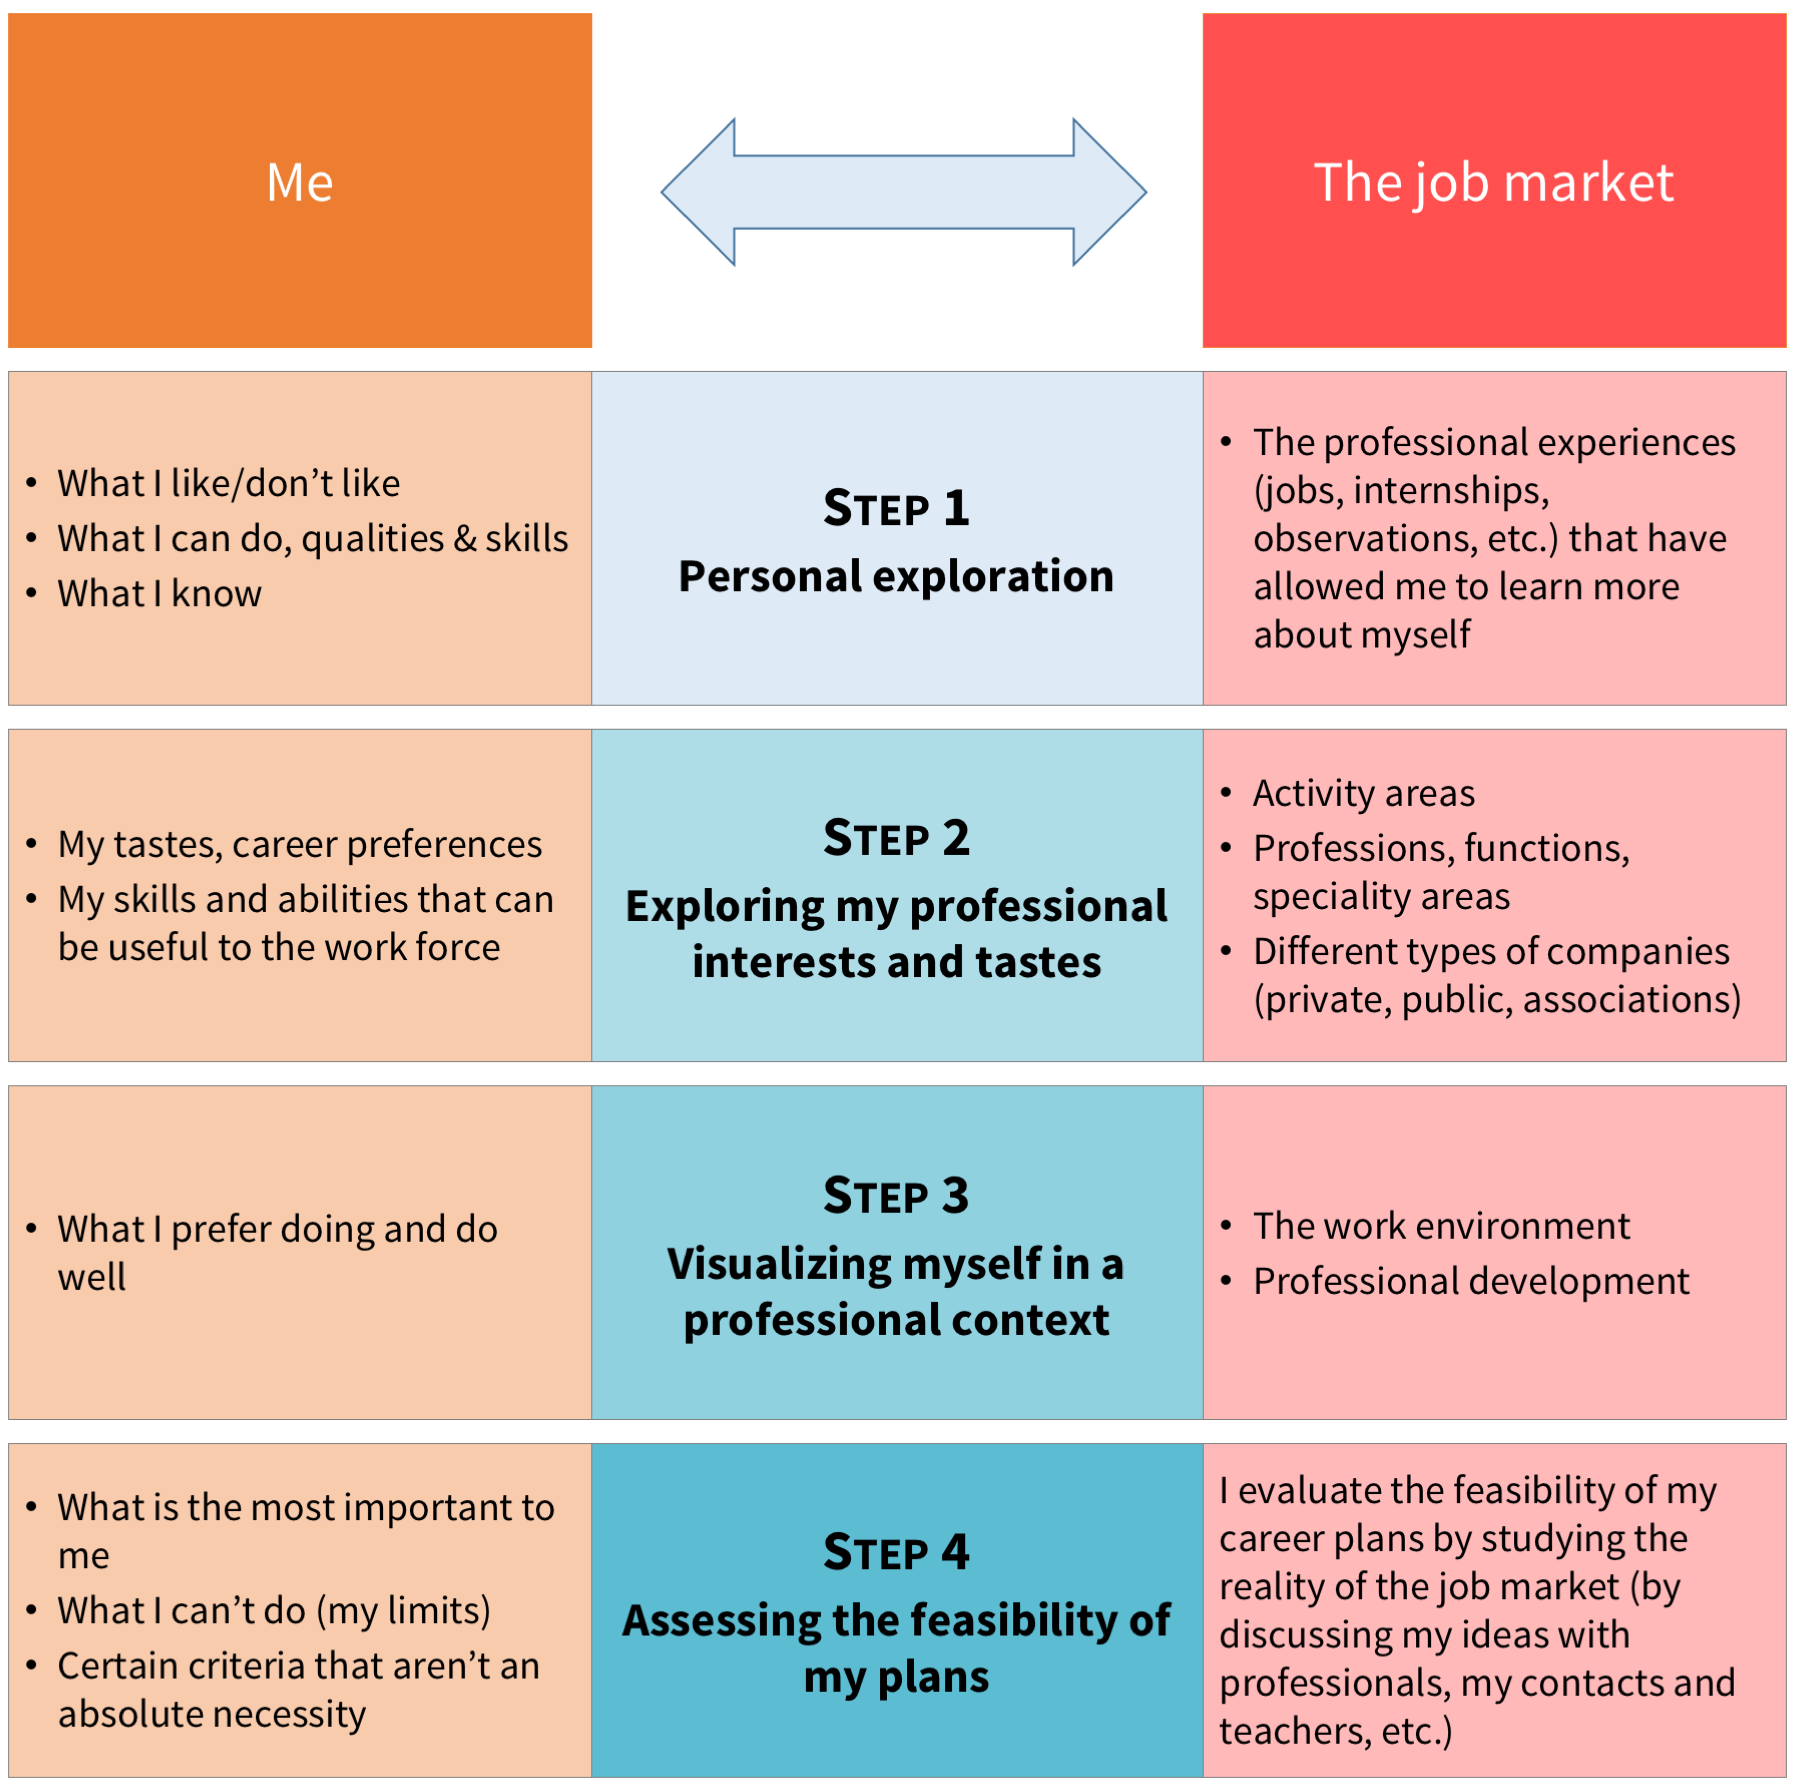 defining your career plan what steps should i follow as part of my career planning strategy